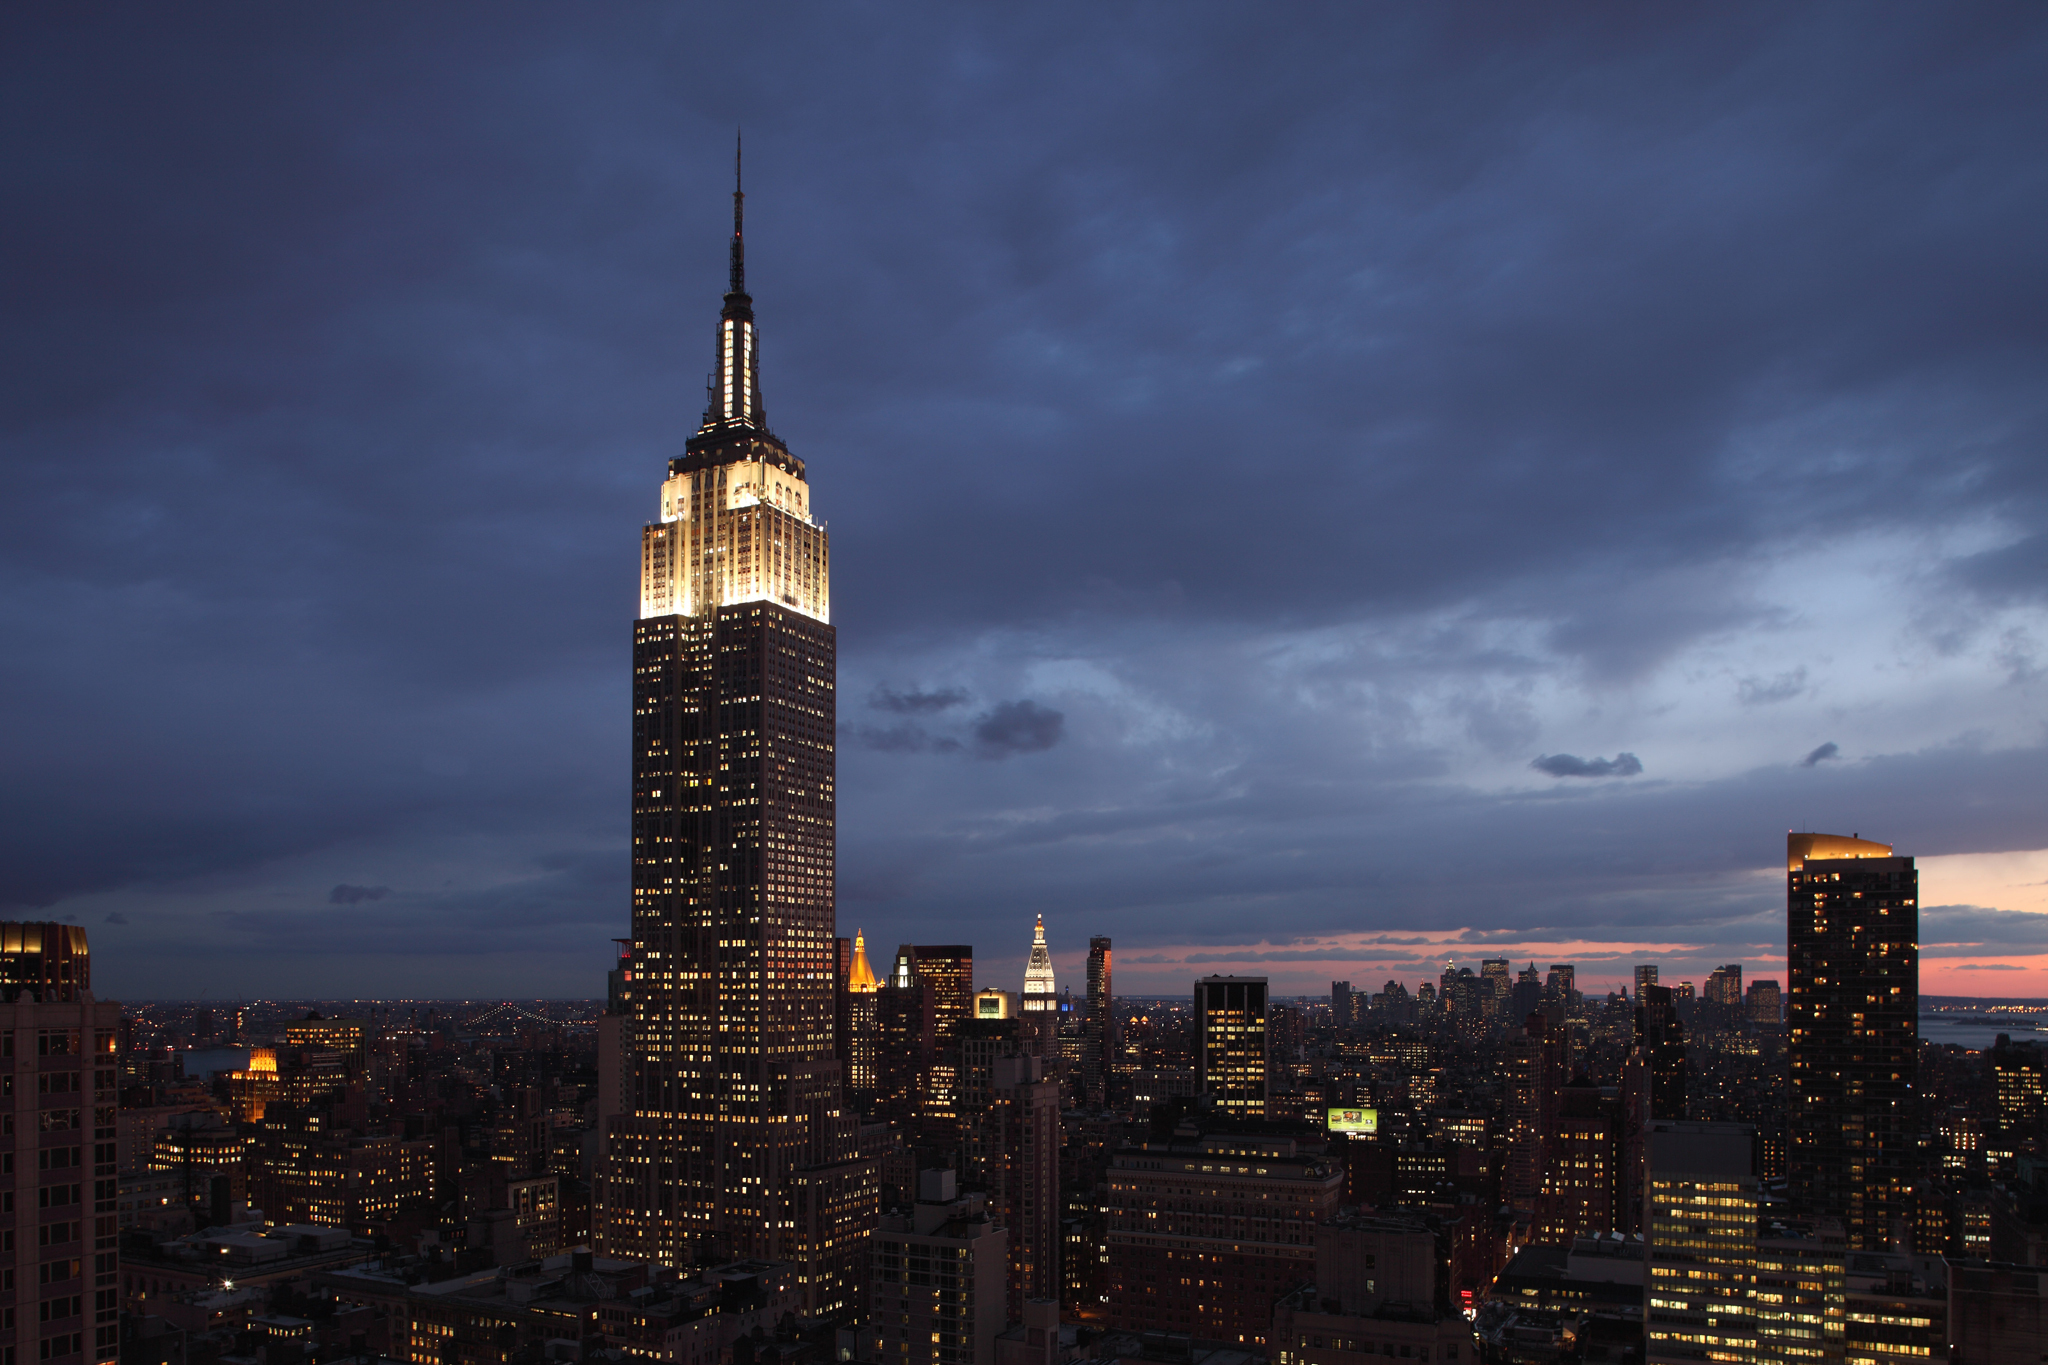 Get a panoramic view of the city atop the Empire State Building